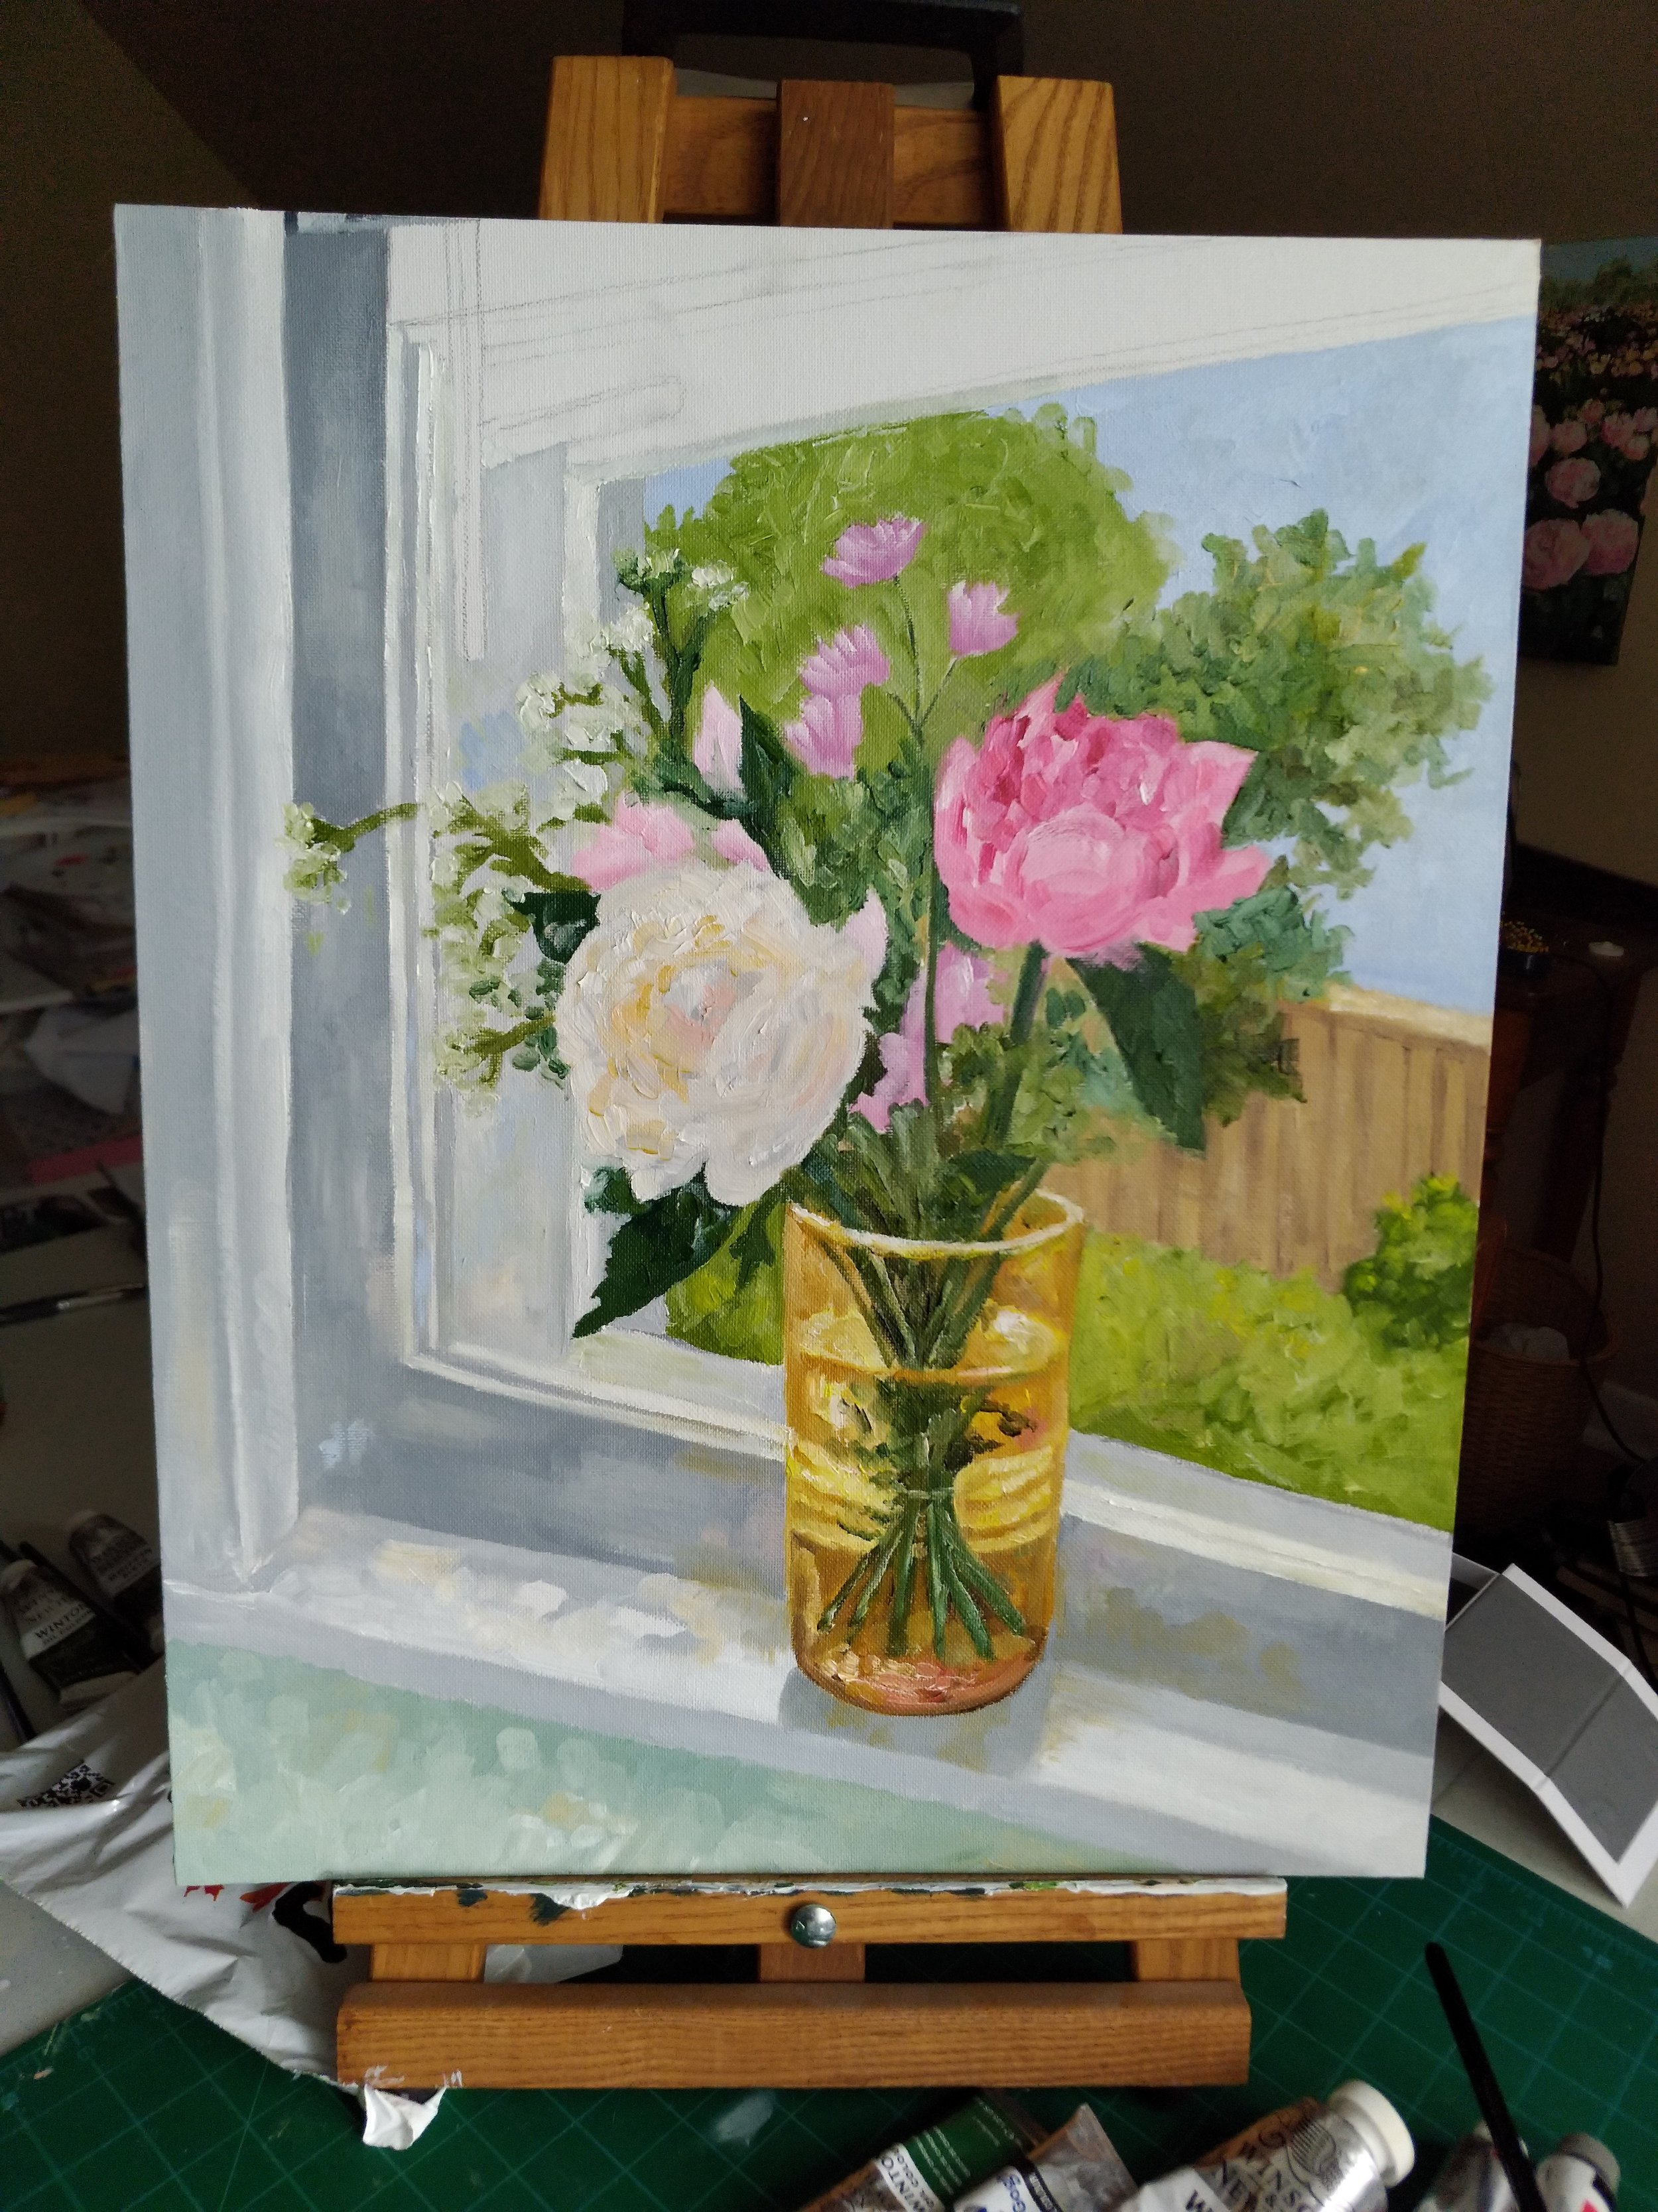 Work in progress: painting of our kitchen window by Amanda Farquharson